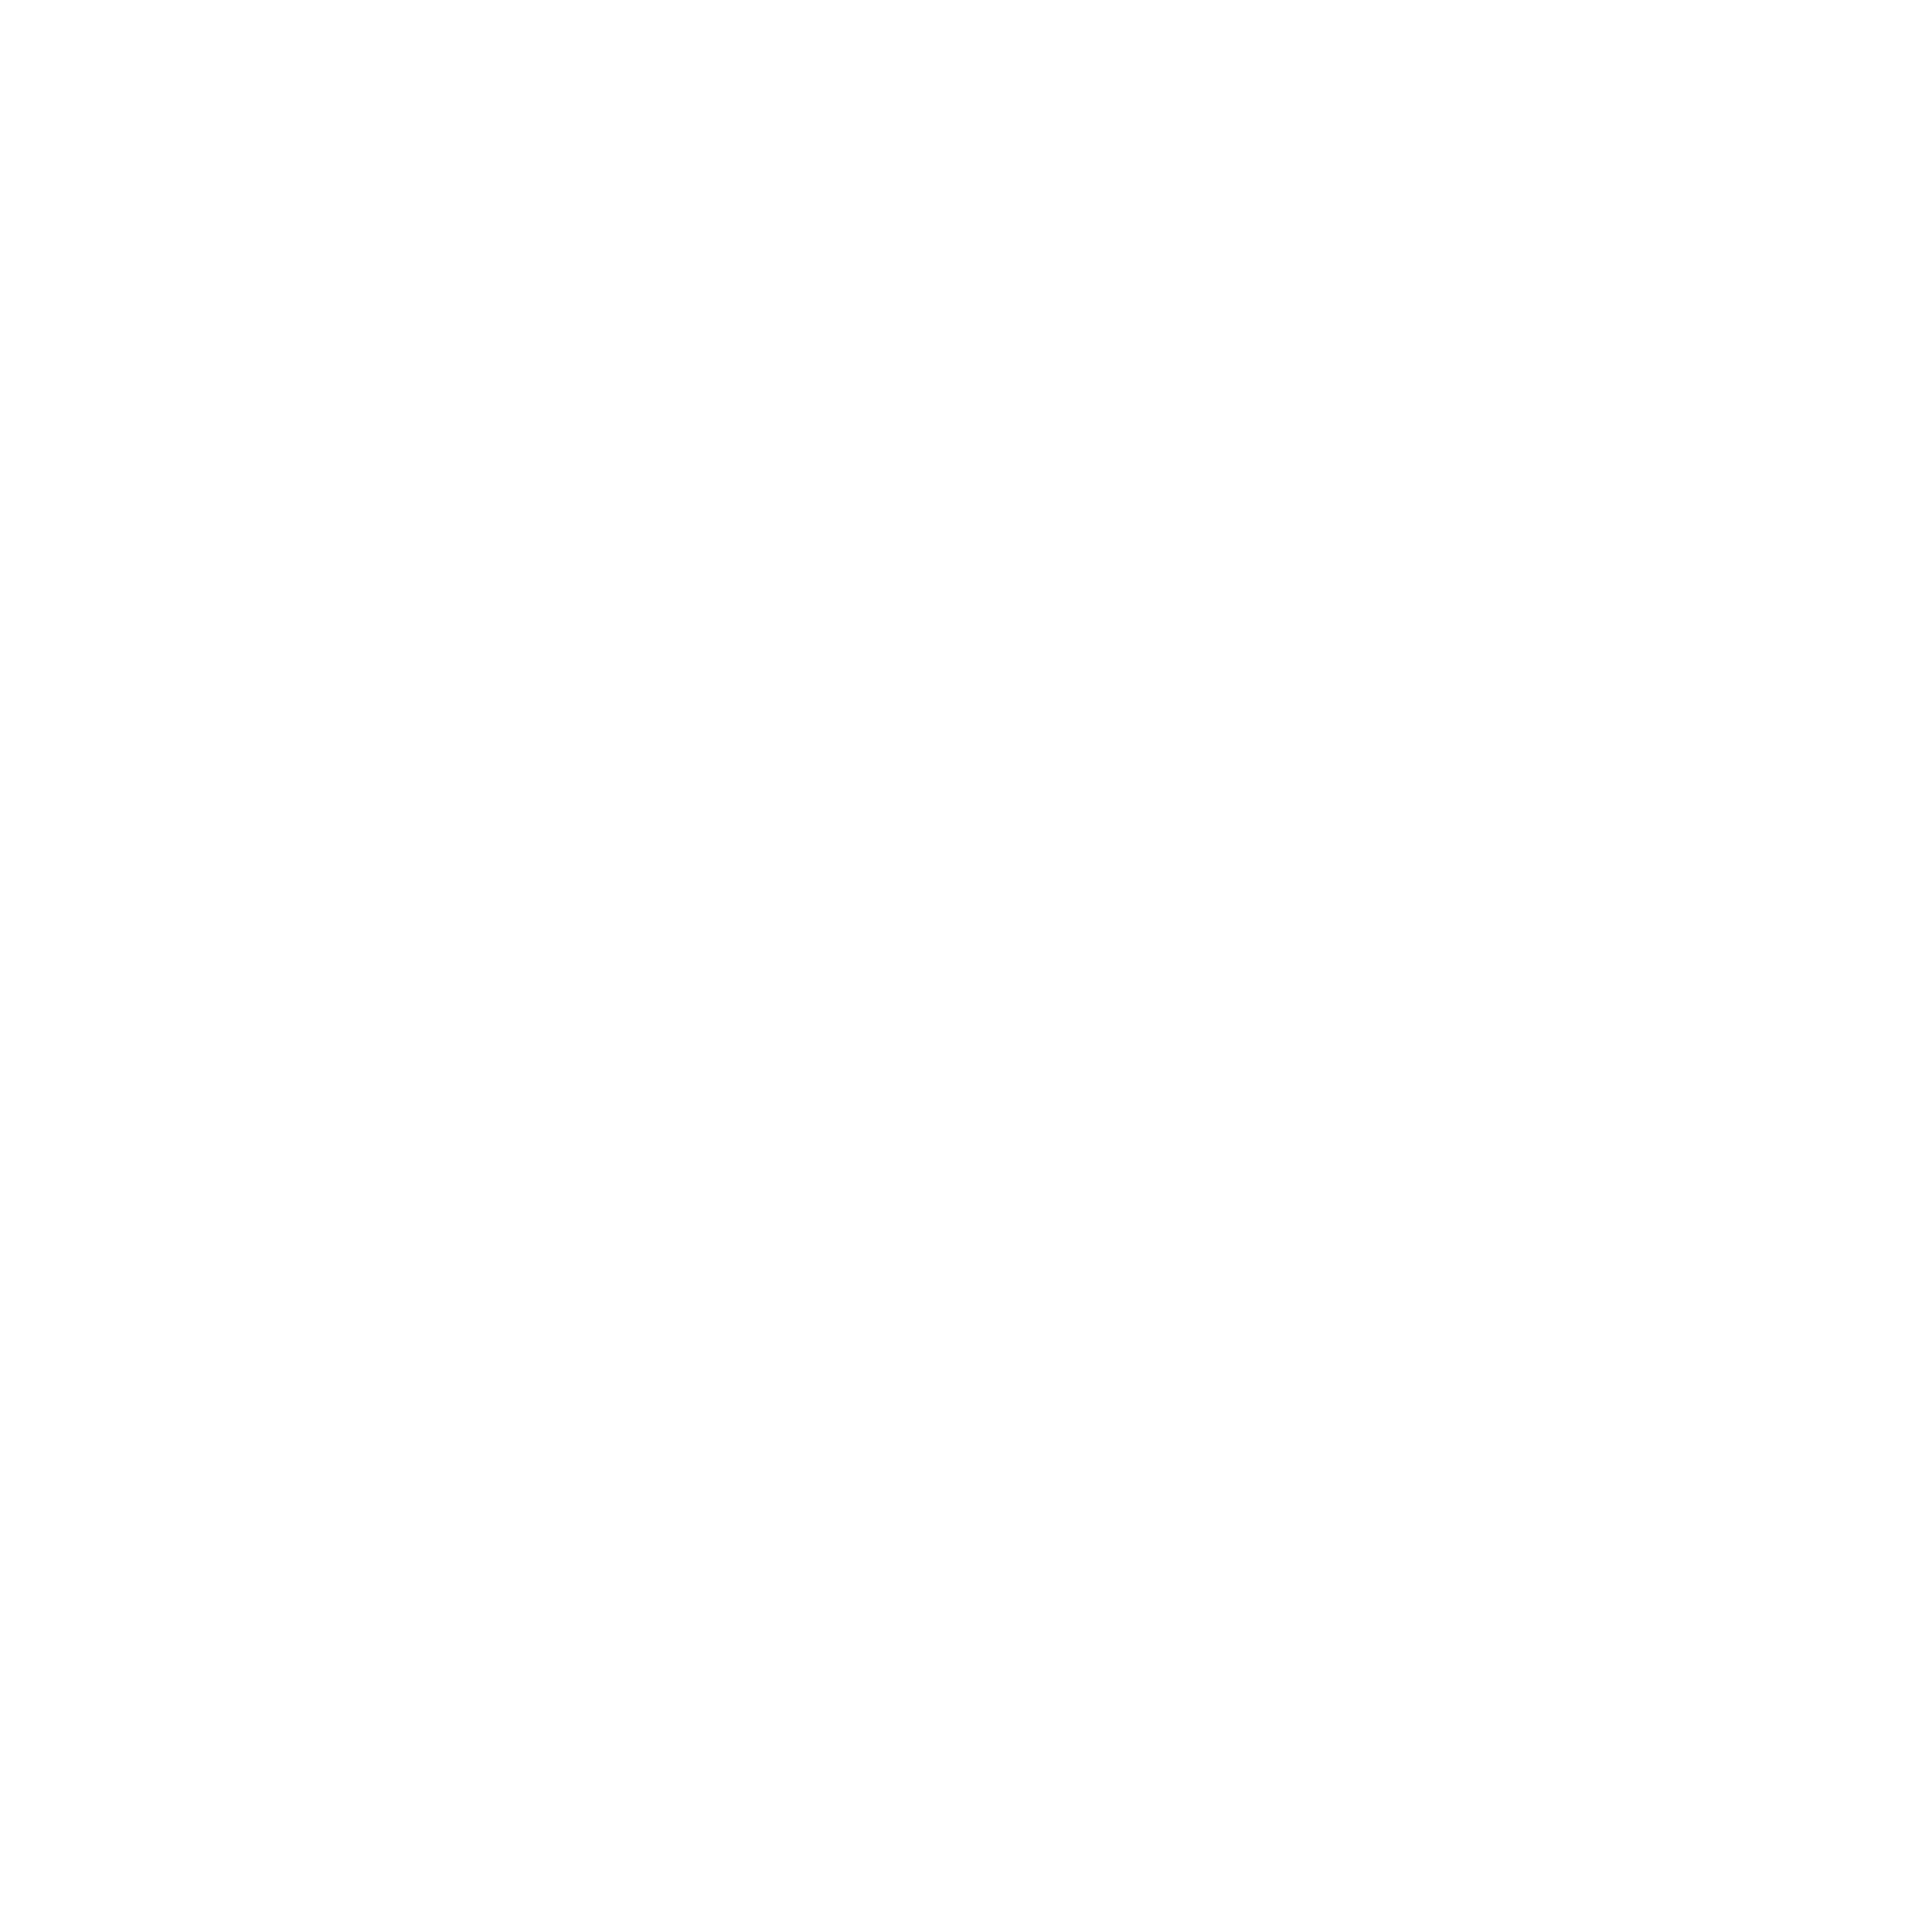 HELLO CLEANING WHITE